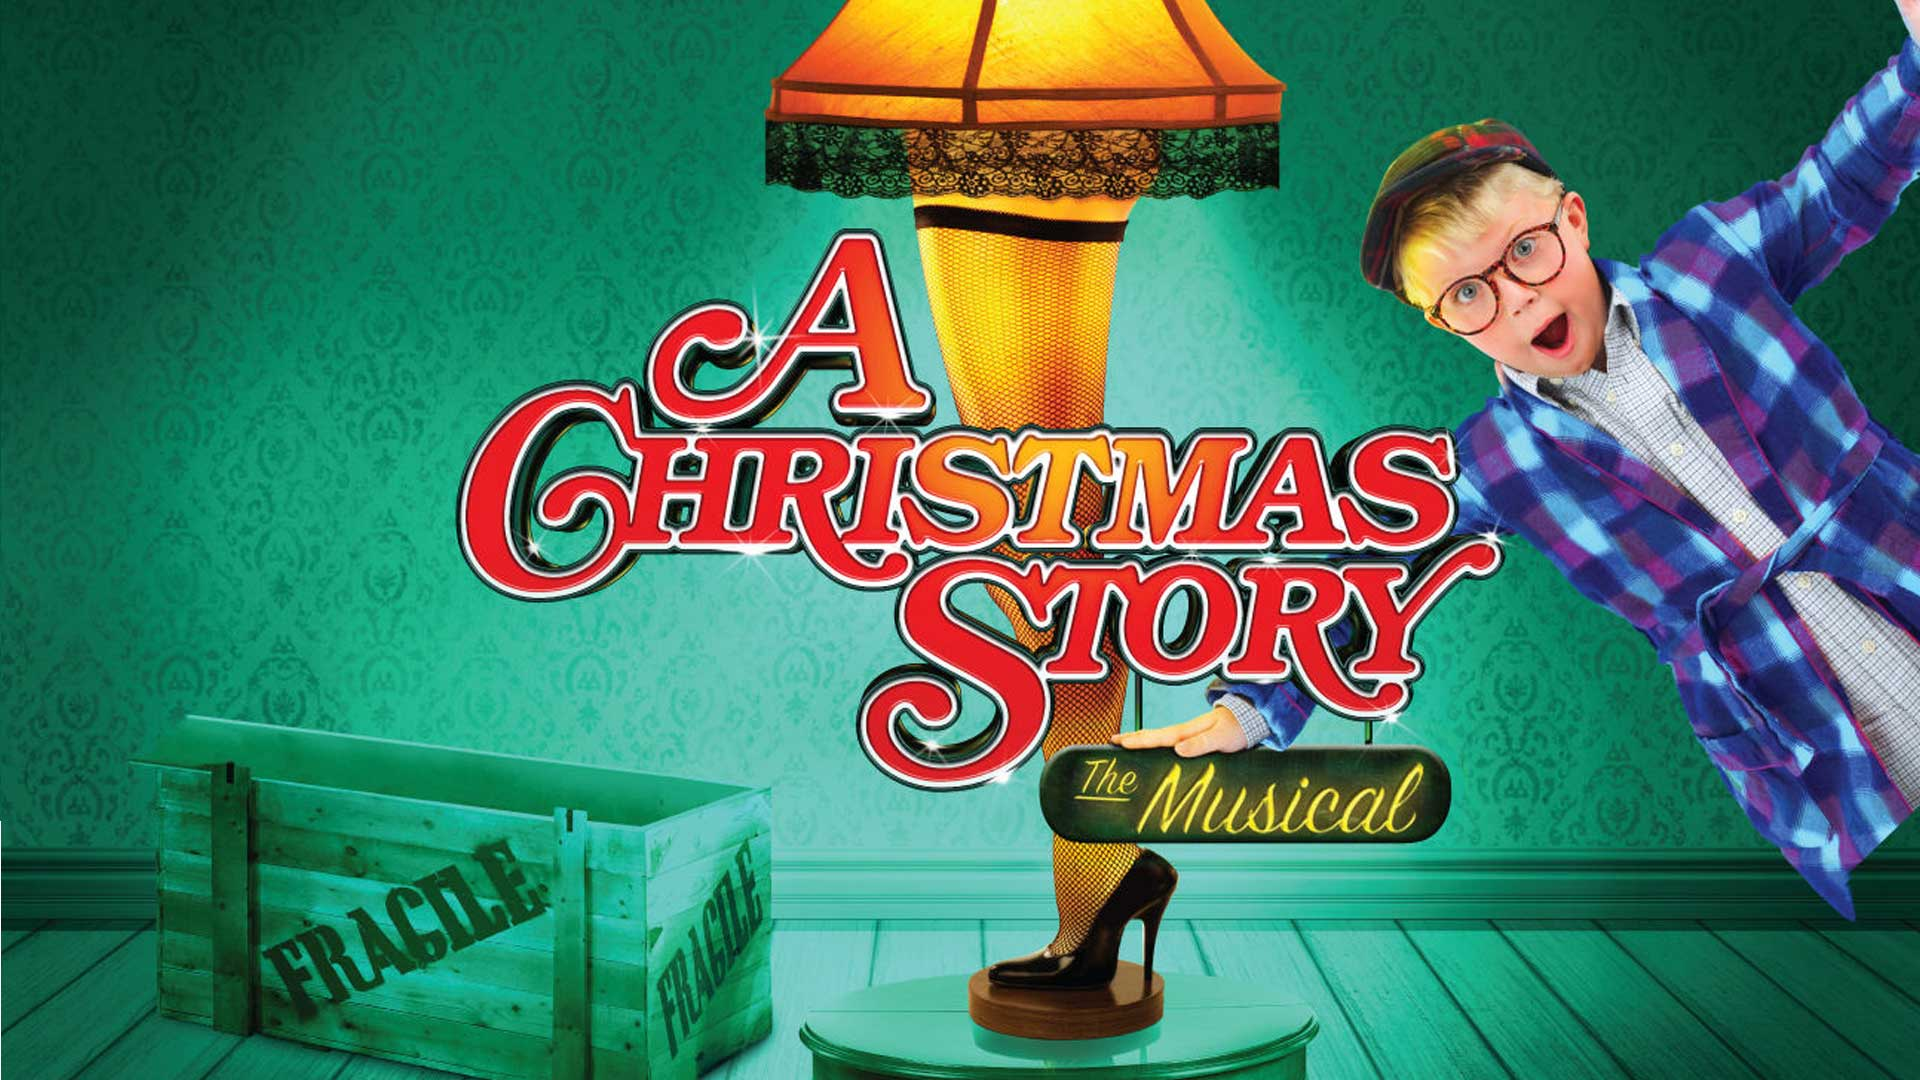 A Christmas Story The Musical.A Christmas Story The Musical Broadway Theater Scranton